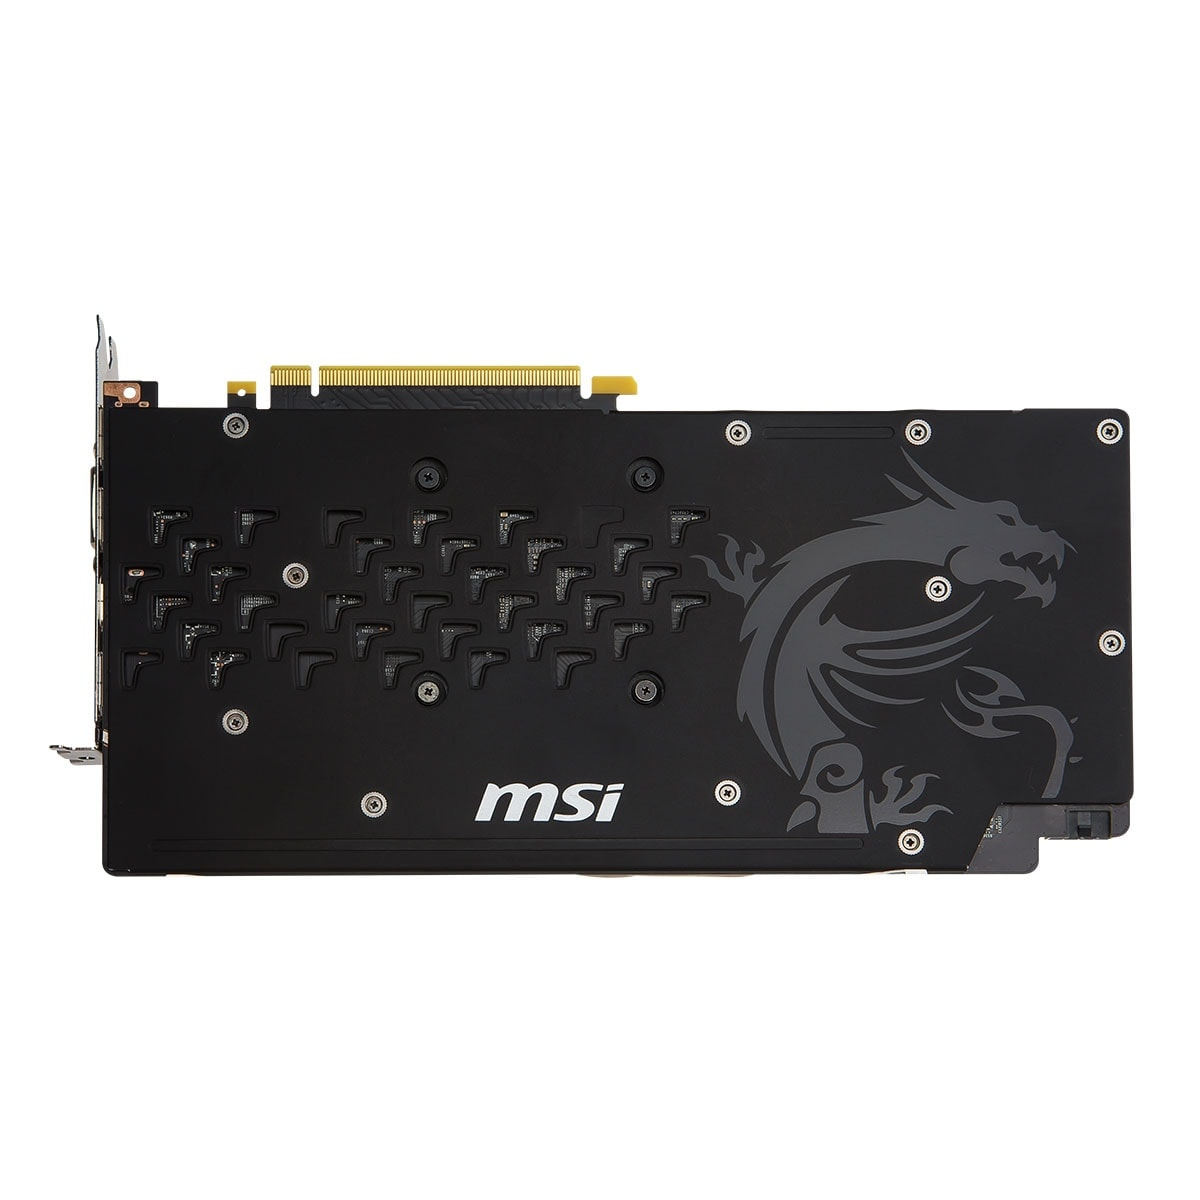 MSI GTX 1060 GAMING X 6G 6Go - Carte graphique MSI - Cybertek.fr - 4